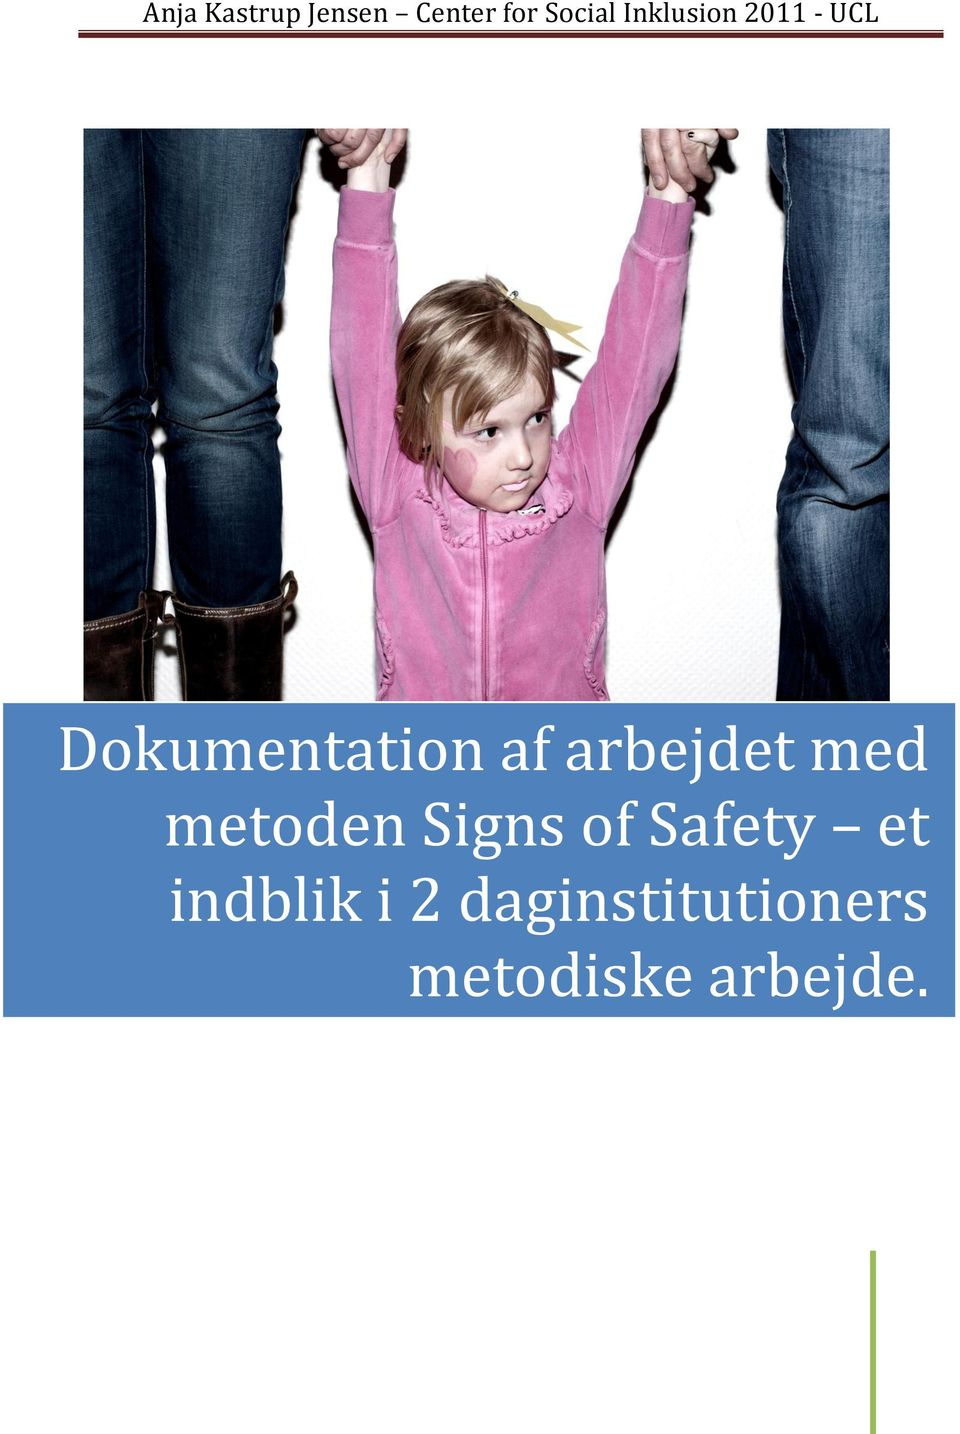 metoden Signs of Safety et indblik i